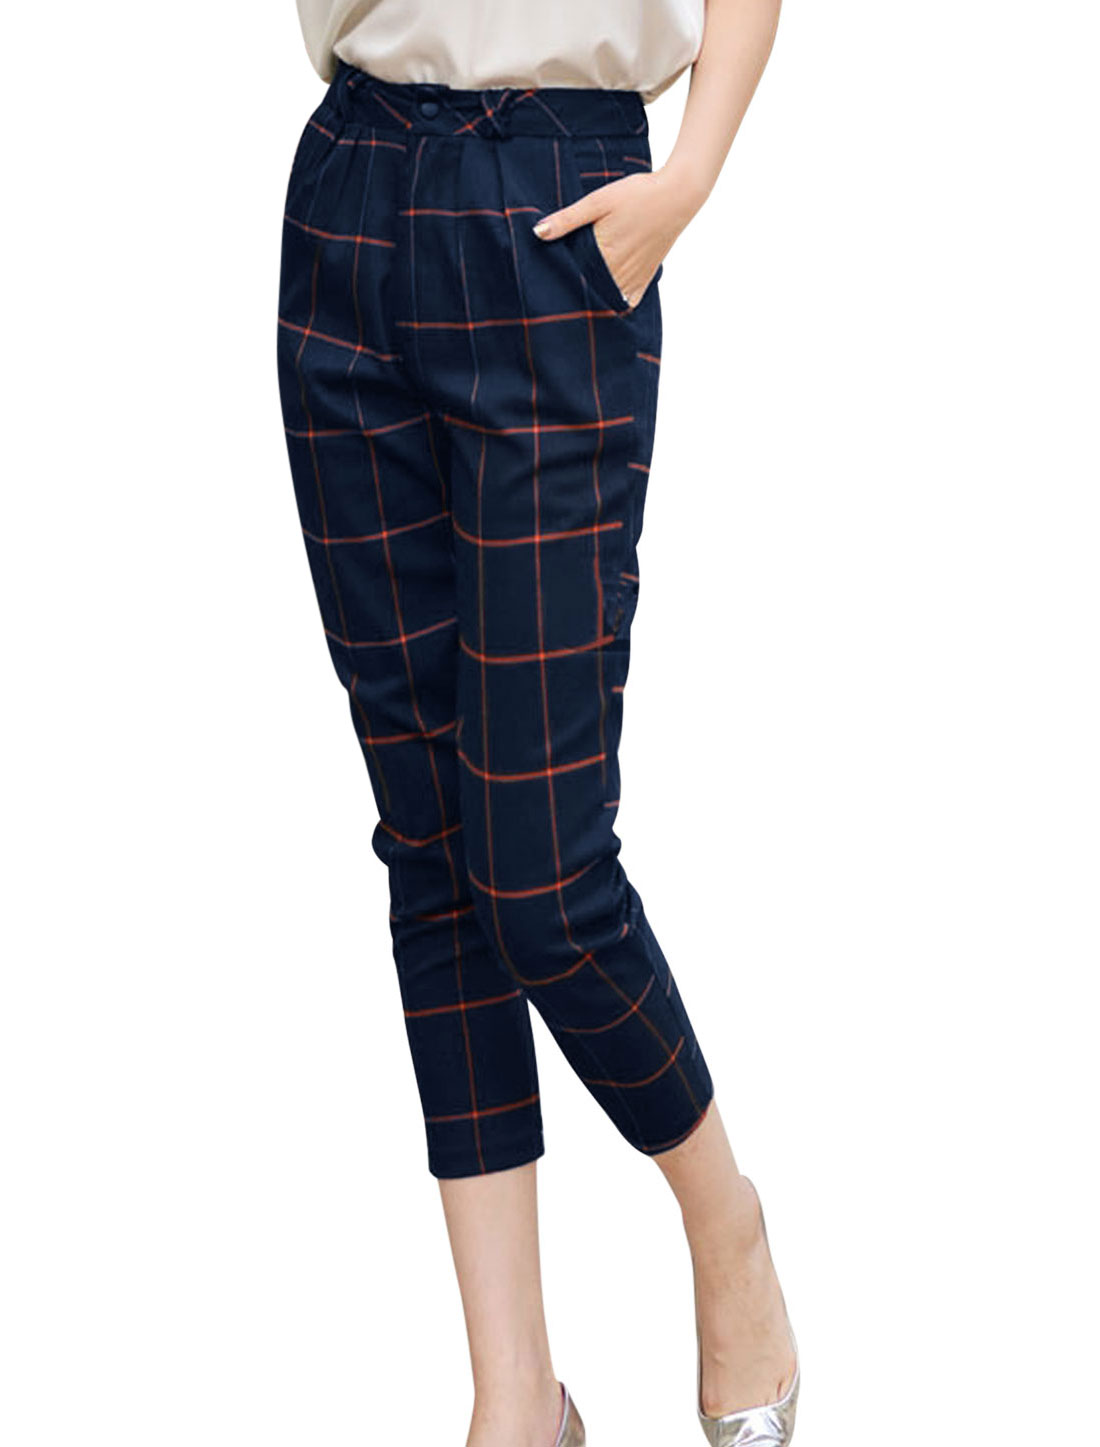 Lady Plaids Pattern Zip Fly Slim Fit Capris Pants w Belt Navy Blue M